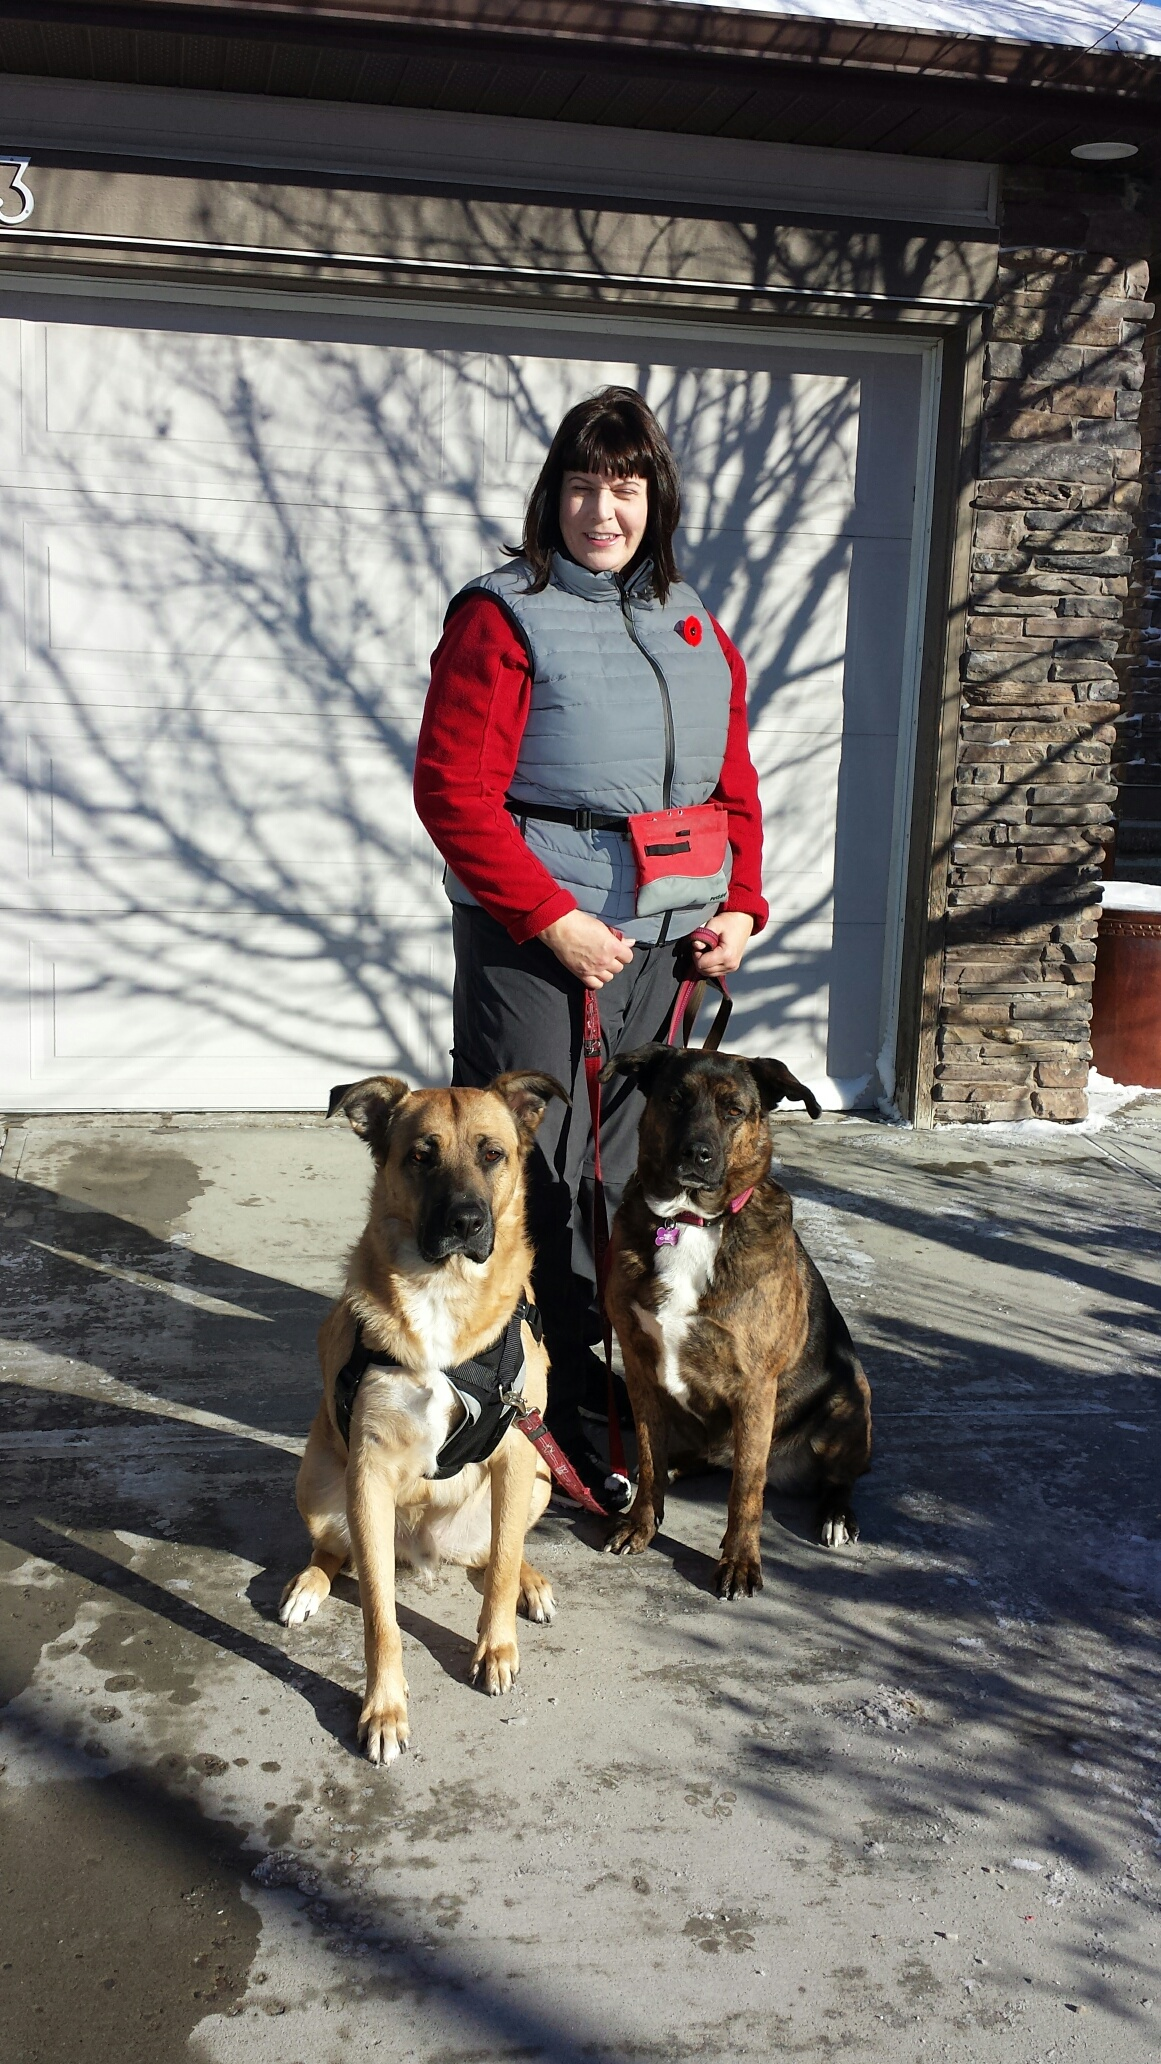 """Enzo and Pepper - walking clients - We have one mastiff cross rescue, Pepper, and when we adopted a second younger mastiff cross, Enzo, this year we knew we might need some help with managing their different training and energy needs between the two dogs.We have loved learning from Donna all things """"dog"""" and have improved how we train and live with our pups as a result. Donna speaks fluent """"Dog"""" and has a gift for understanding dogs and their behavior. She brings knowledge and an approach that is fun, patient and thoughtful. These attributes quickly built trust and put our dogs at ease. They eagerly put their energy into sessions and walks with Donna, she is definitely their favorite visitor!Walking two 80-90 pound pups is something we need to do safely. Donna has been working closely with us to understand and manage their impulse control, particularly with bunnies and squirrels in our neighborhood. On walks together, she's explained dog psychology and given us really useful techniques for managing those super-exciting bunny sightings! I used to try to avoid bunnies, other dogs, and people all together, but not being a realistic strategy, we now can more confidently continue on our way.Besides training our dogs, Donna also put in extra time to show us brain games, trials of dog toys, and harnesses. The harness she recommended substantially reduced Enzo's pulling on his leash and is more ergonomic for his body type. I appreciate having her guidance – pet supply stores have received a lot of our money unnecessarily!Donna's training has been amazing. Her professionalism, kindness and genuine love of dogs is apparent. We really appreciate that she works around our schedules and was there to support our home/dog sitter while we were away on vacation – it brought peace of mind to have her nearby and so happy to help.Jaime and family"""